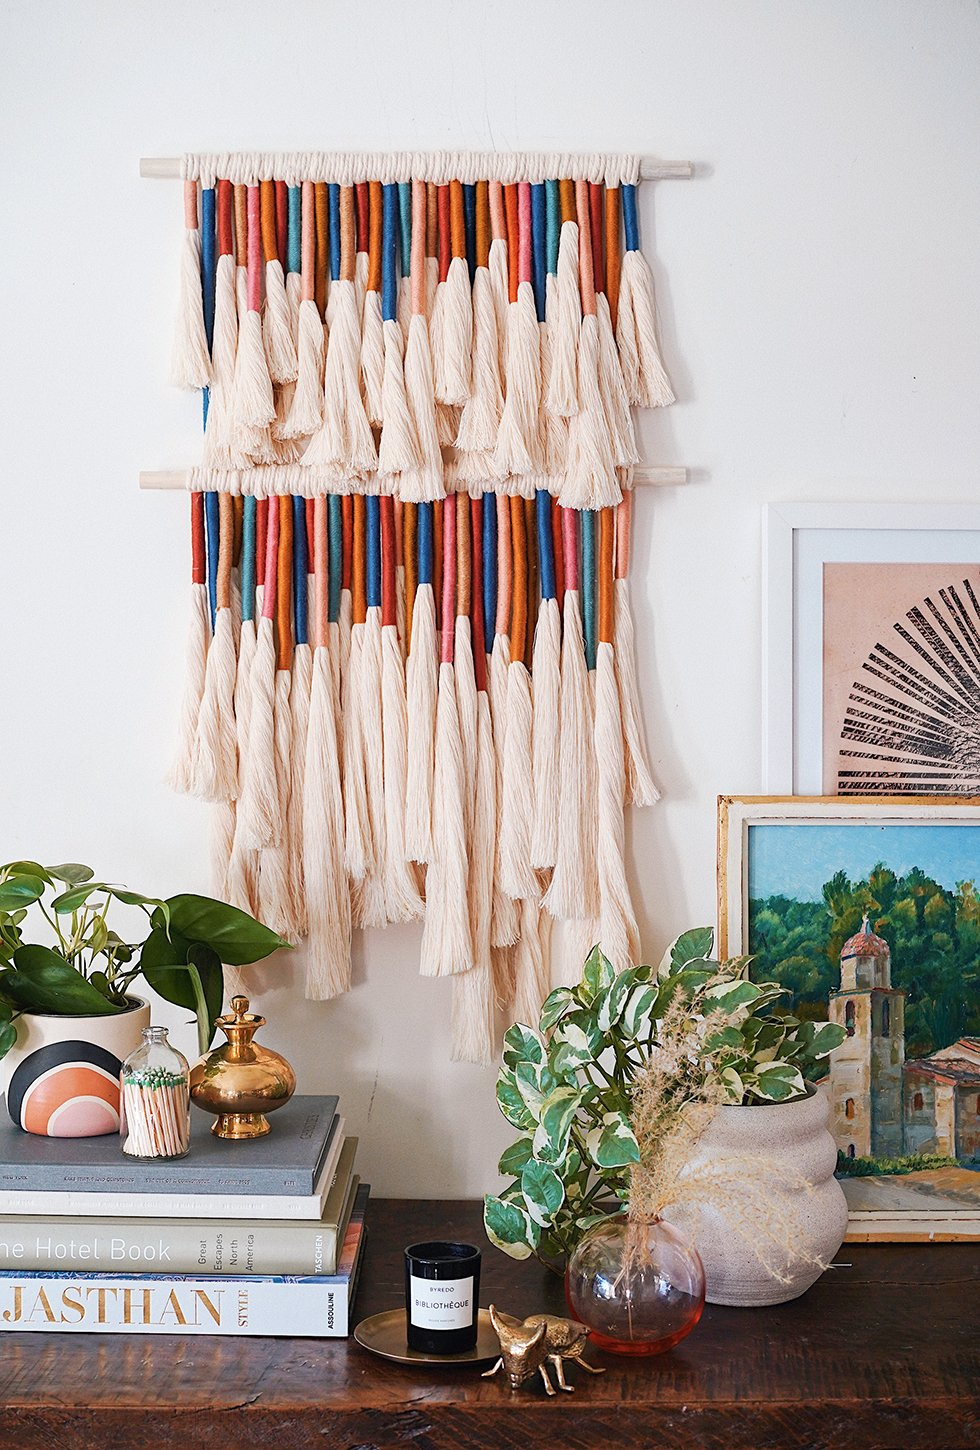 Tassel wall hanging from Honestly WTF